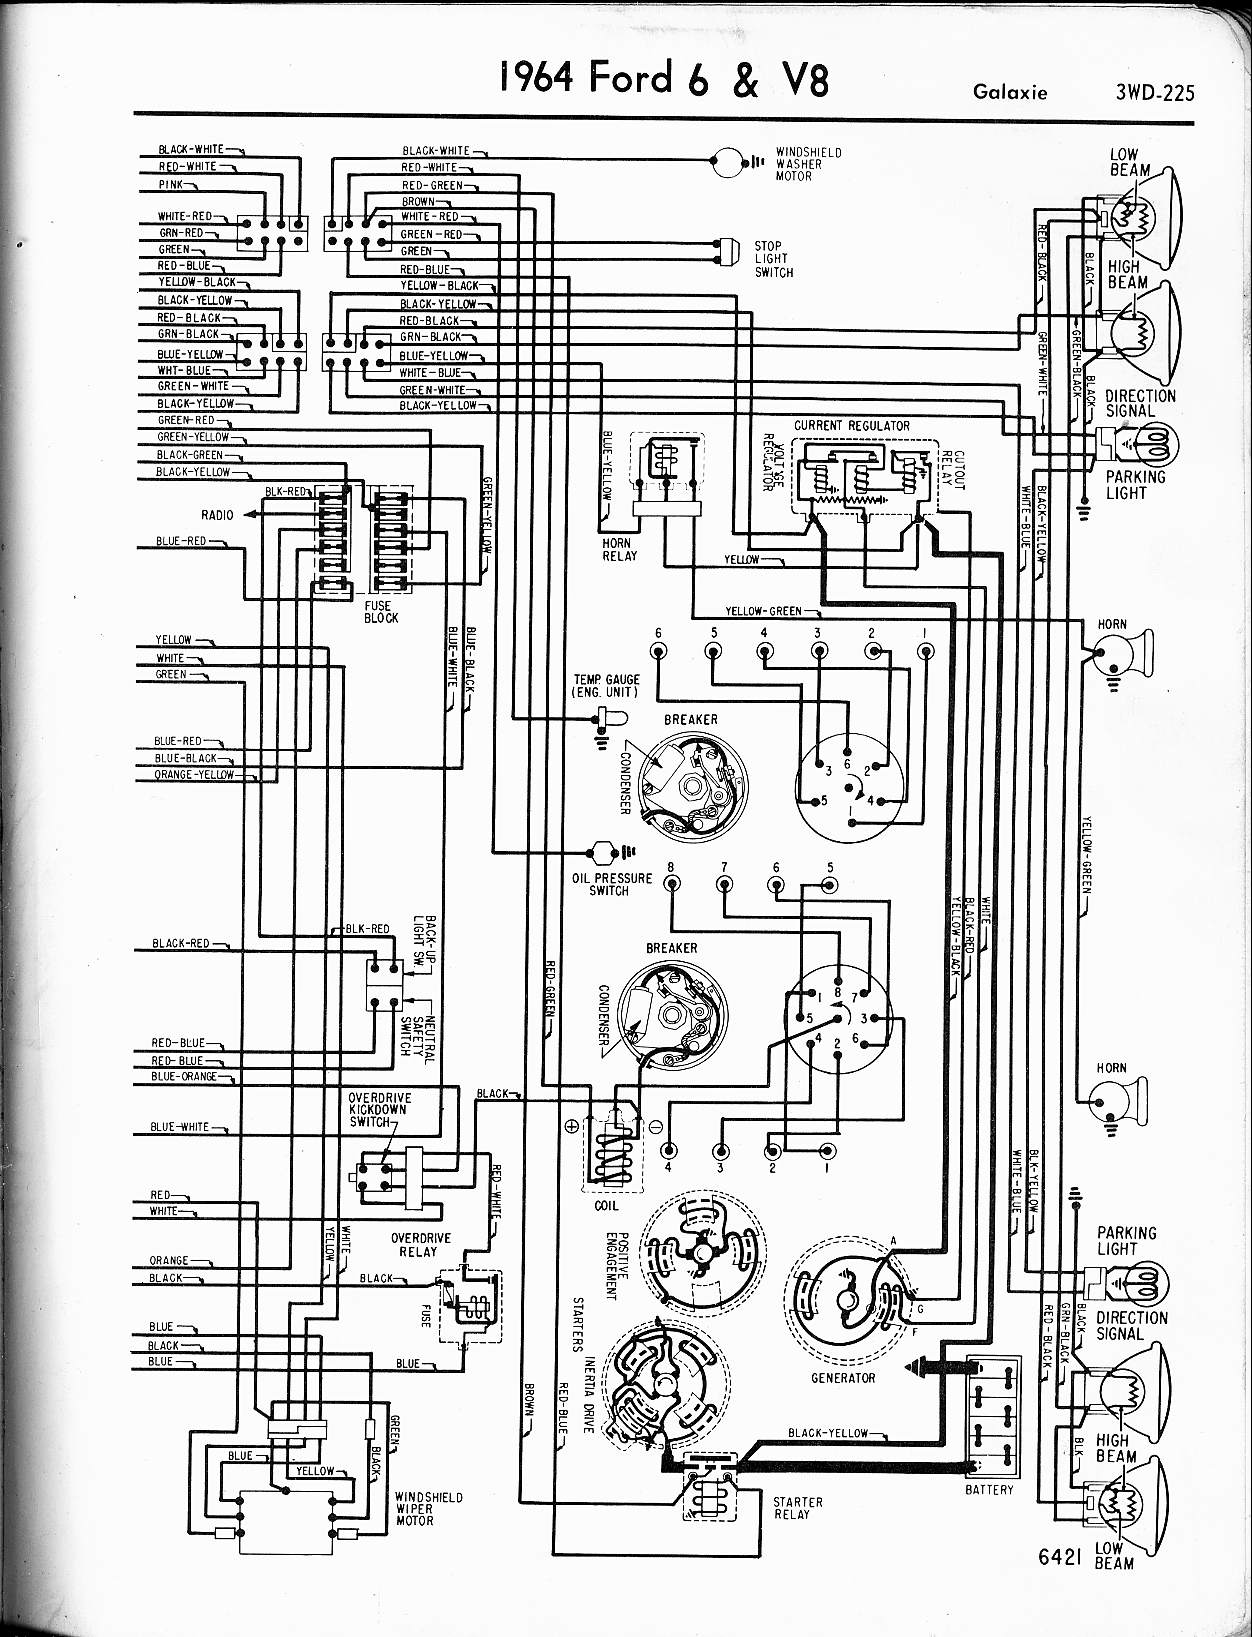 57 65 Ford Wiring Diagrams Turn Signal Diagram 1964 6 V8 Galaxie Right